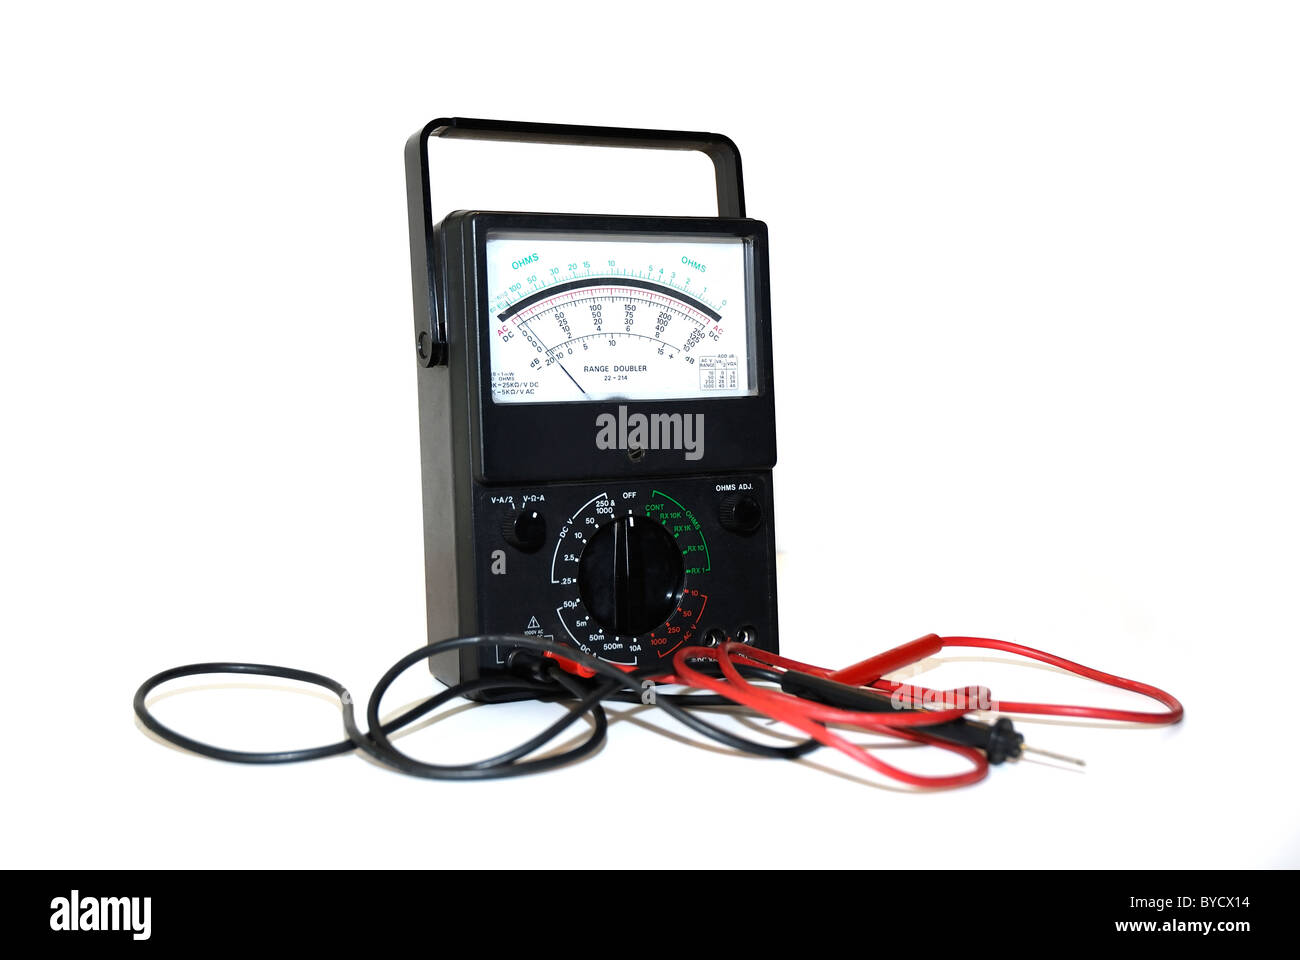 OHMS meter used to test electrical current - Stock Image